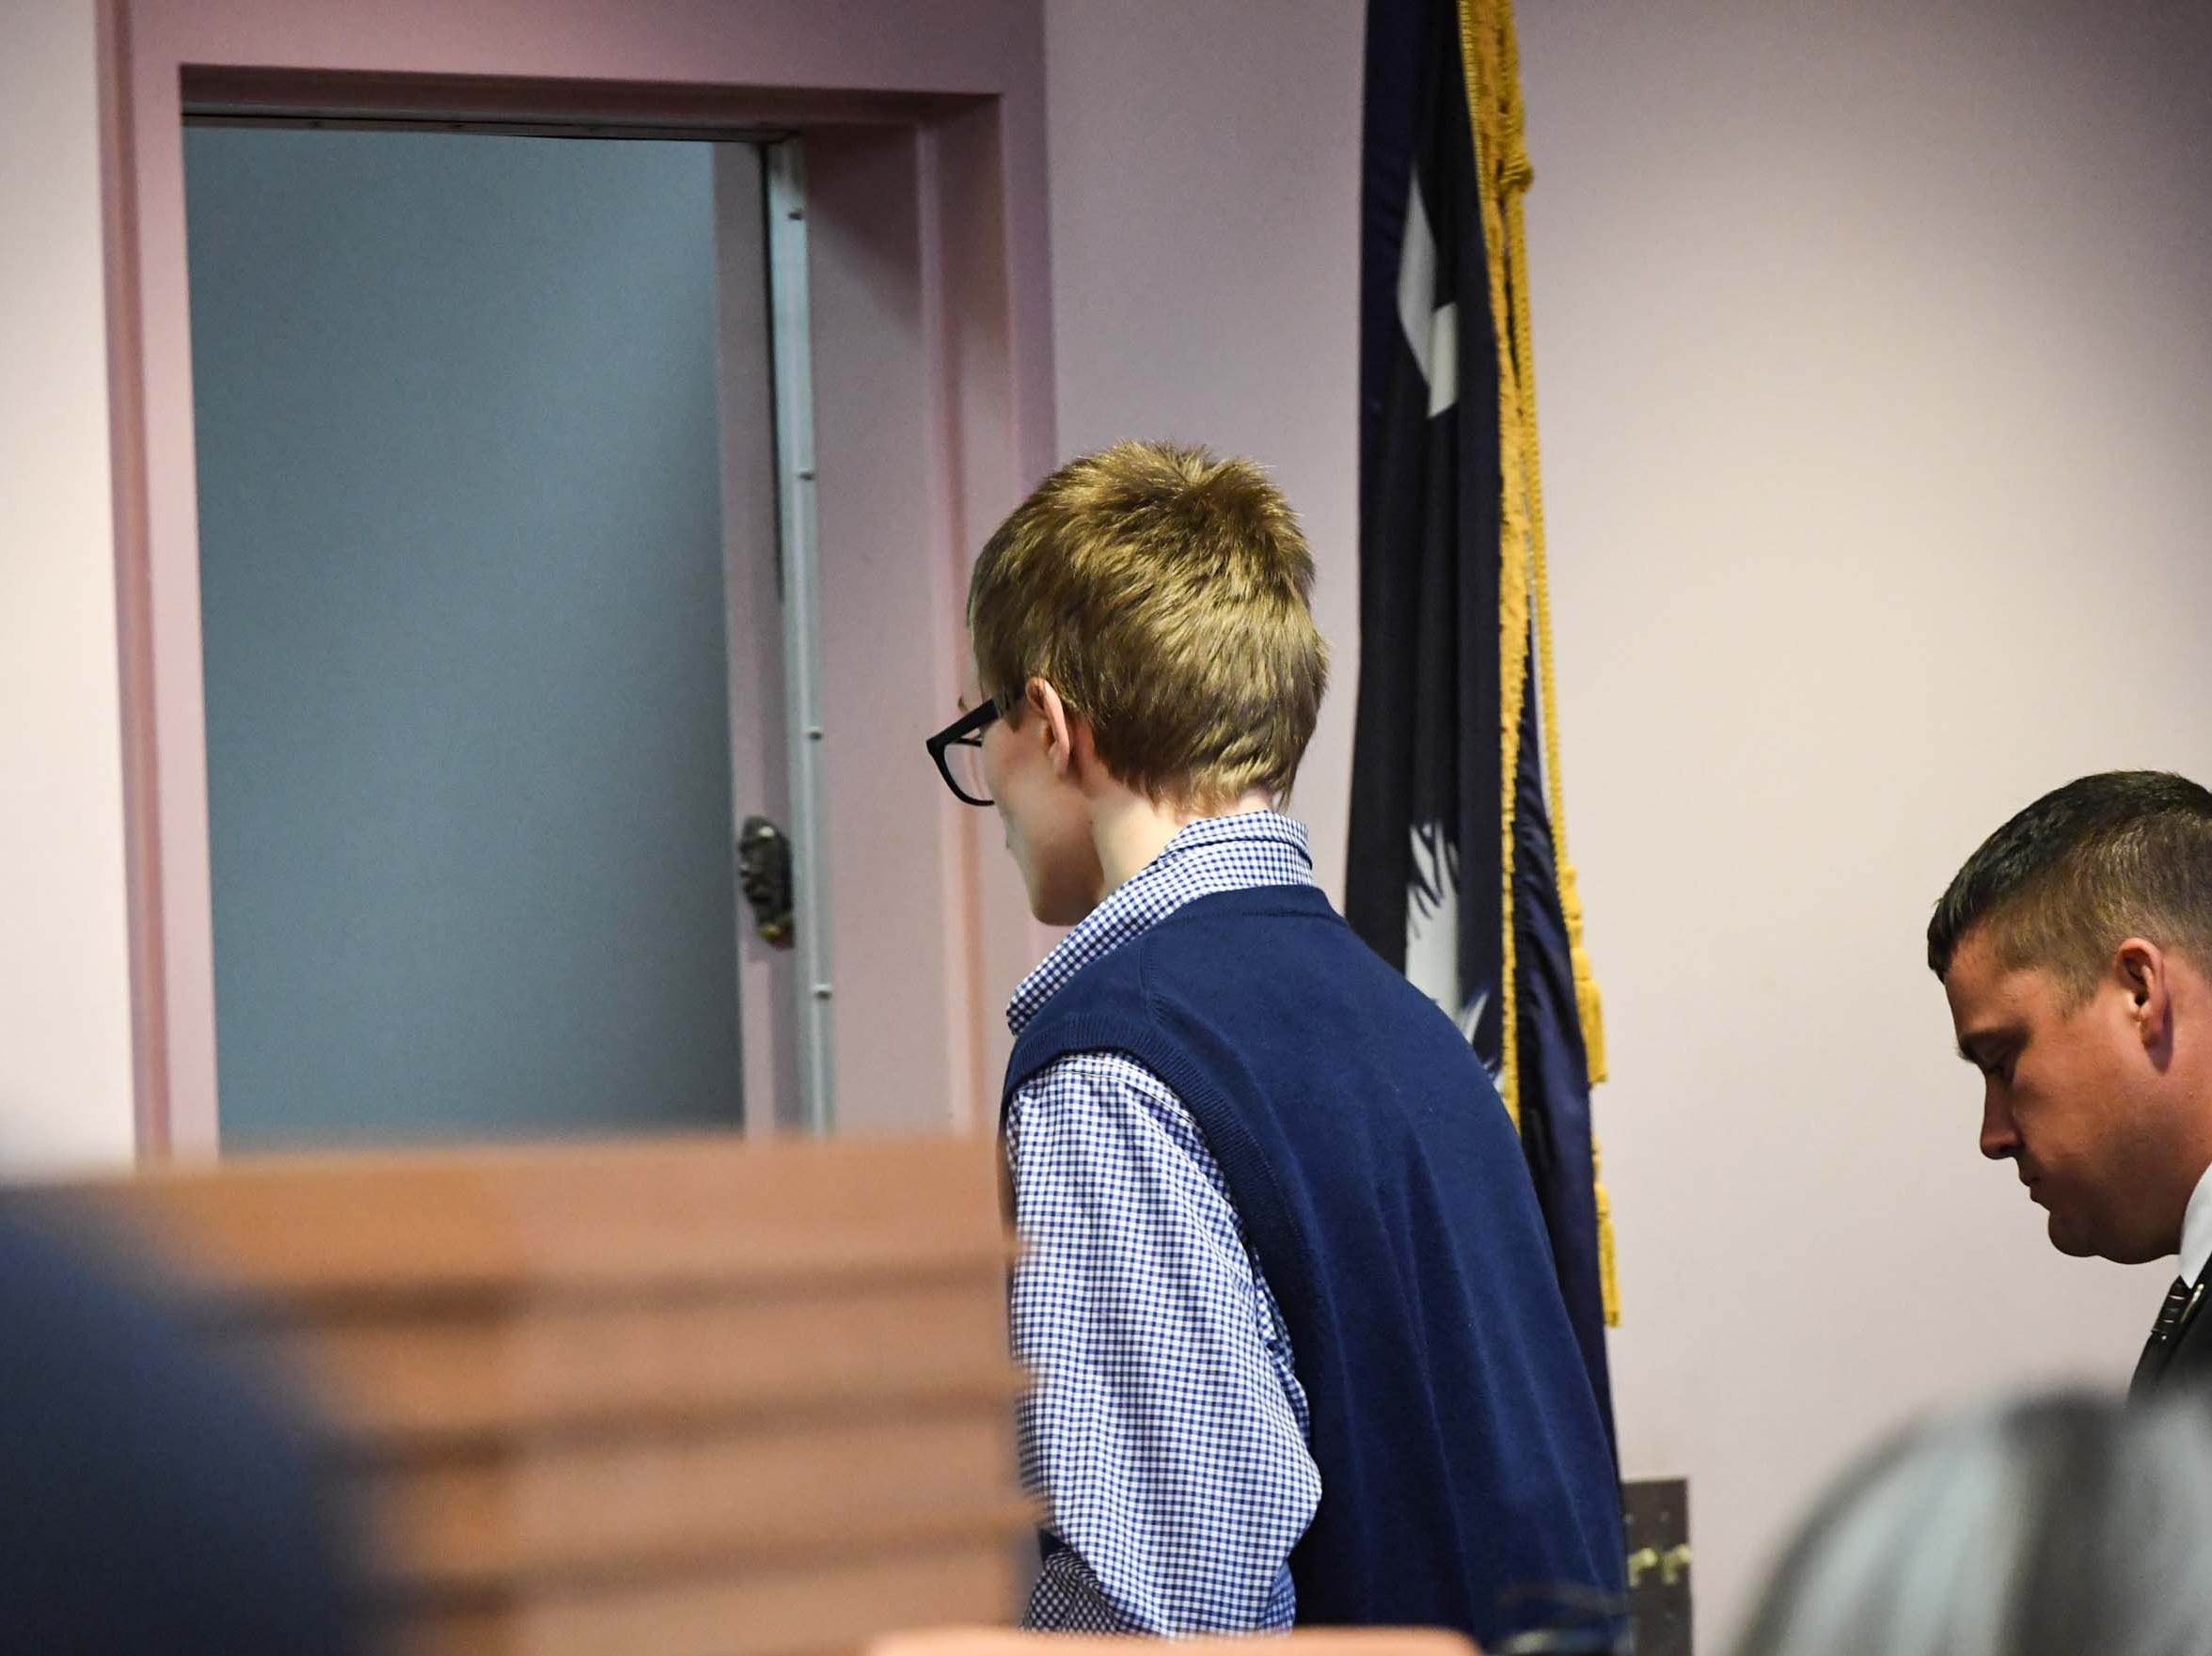 Jesse Osborne leaves after a hearing for him in the Anderson County Courthouse Wednesday, December 12, 2018.